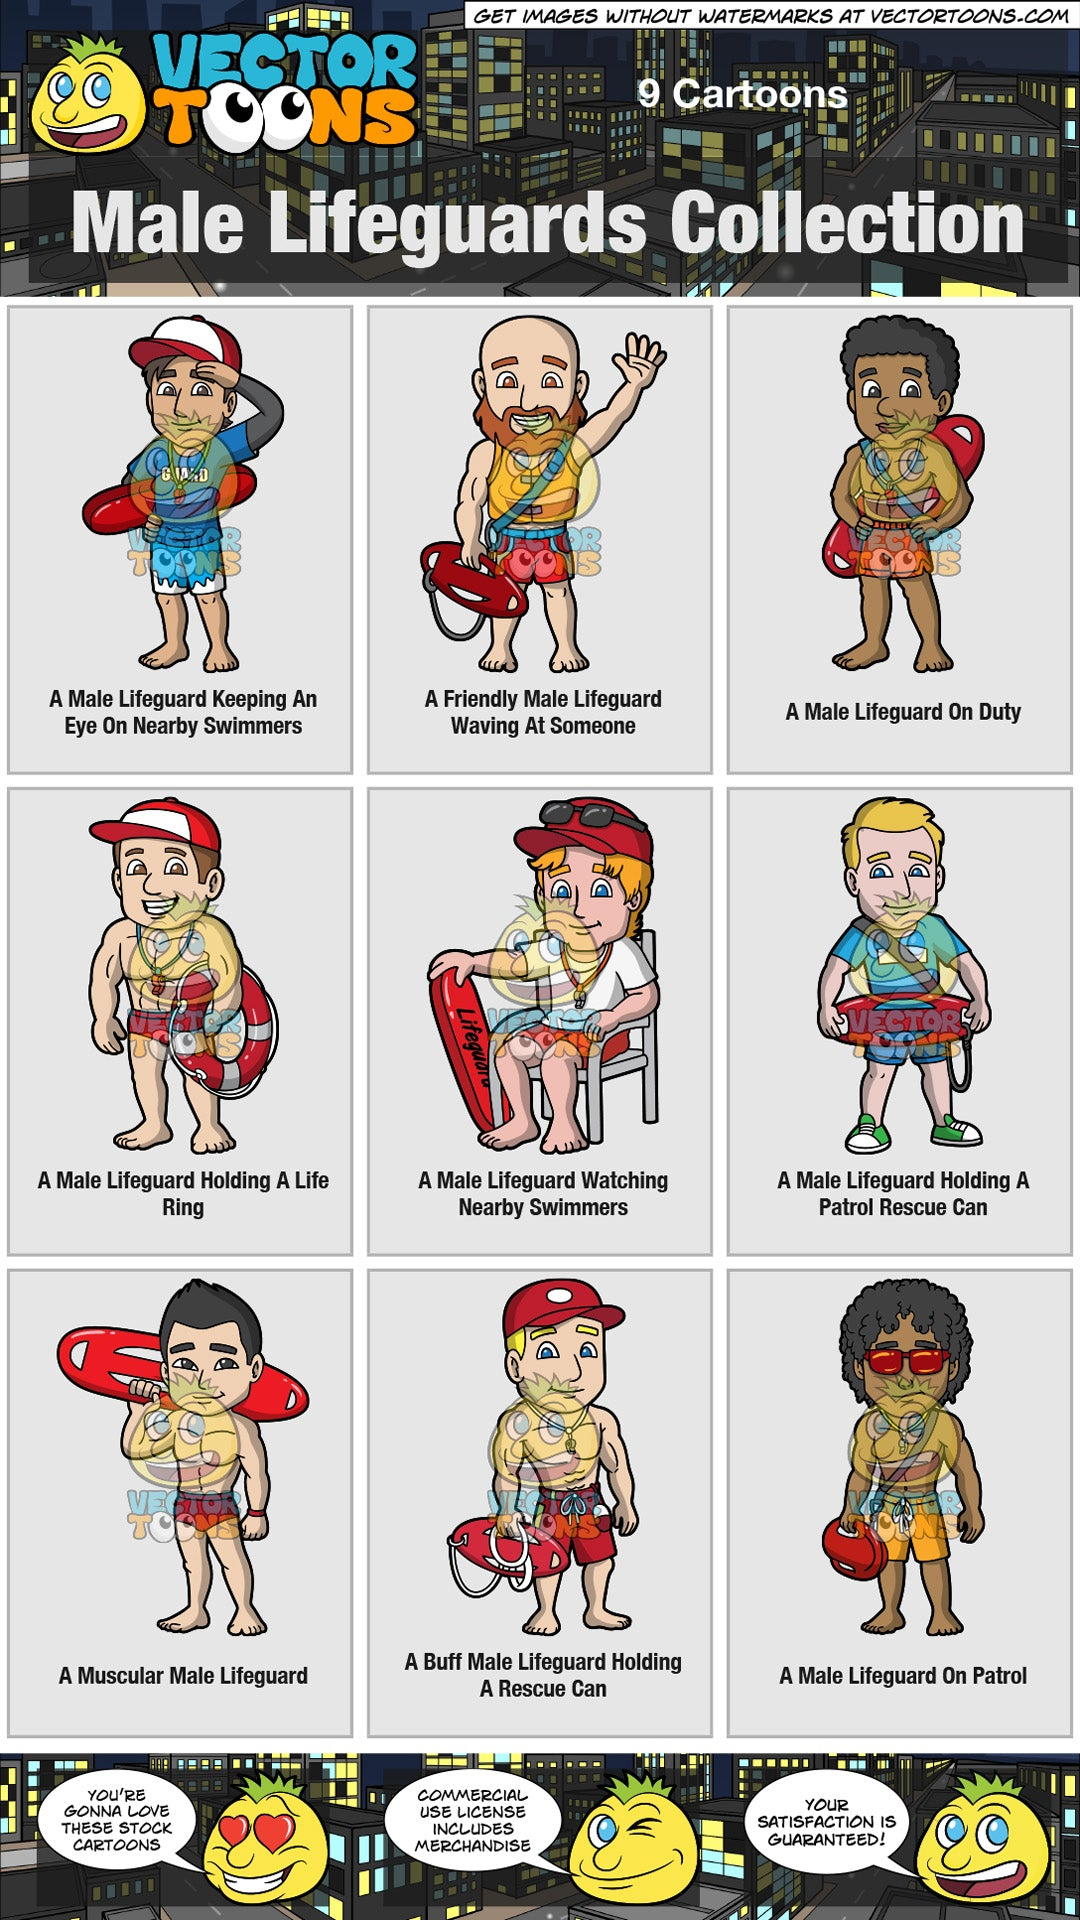 Male Lifeguards Collection